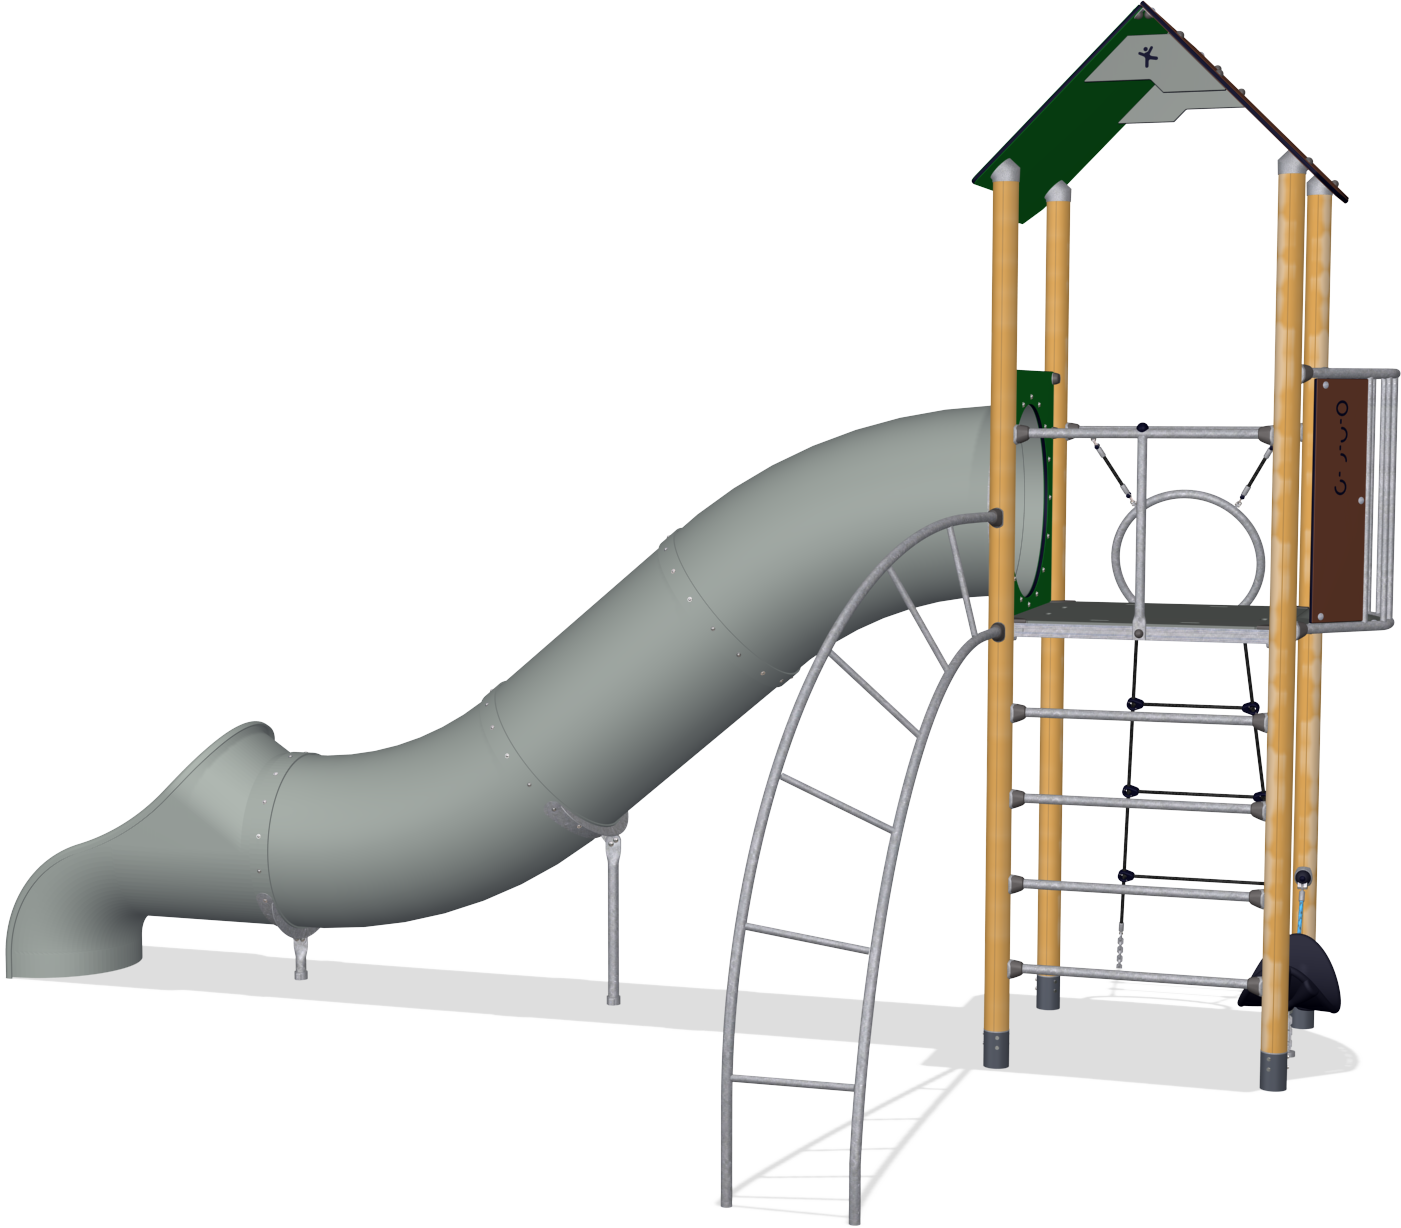 Student clipart playground. Slide drawing at getdrawings